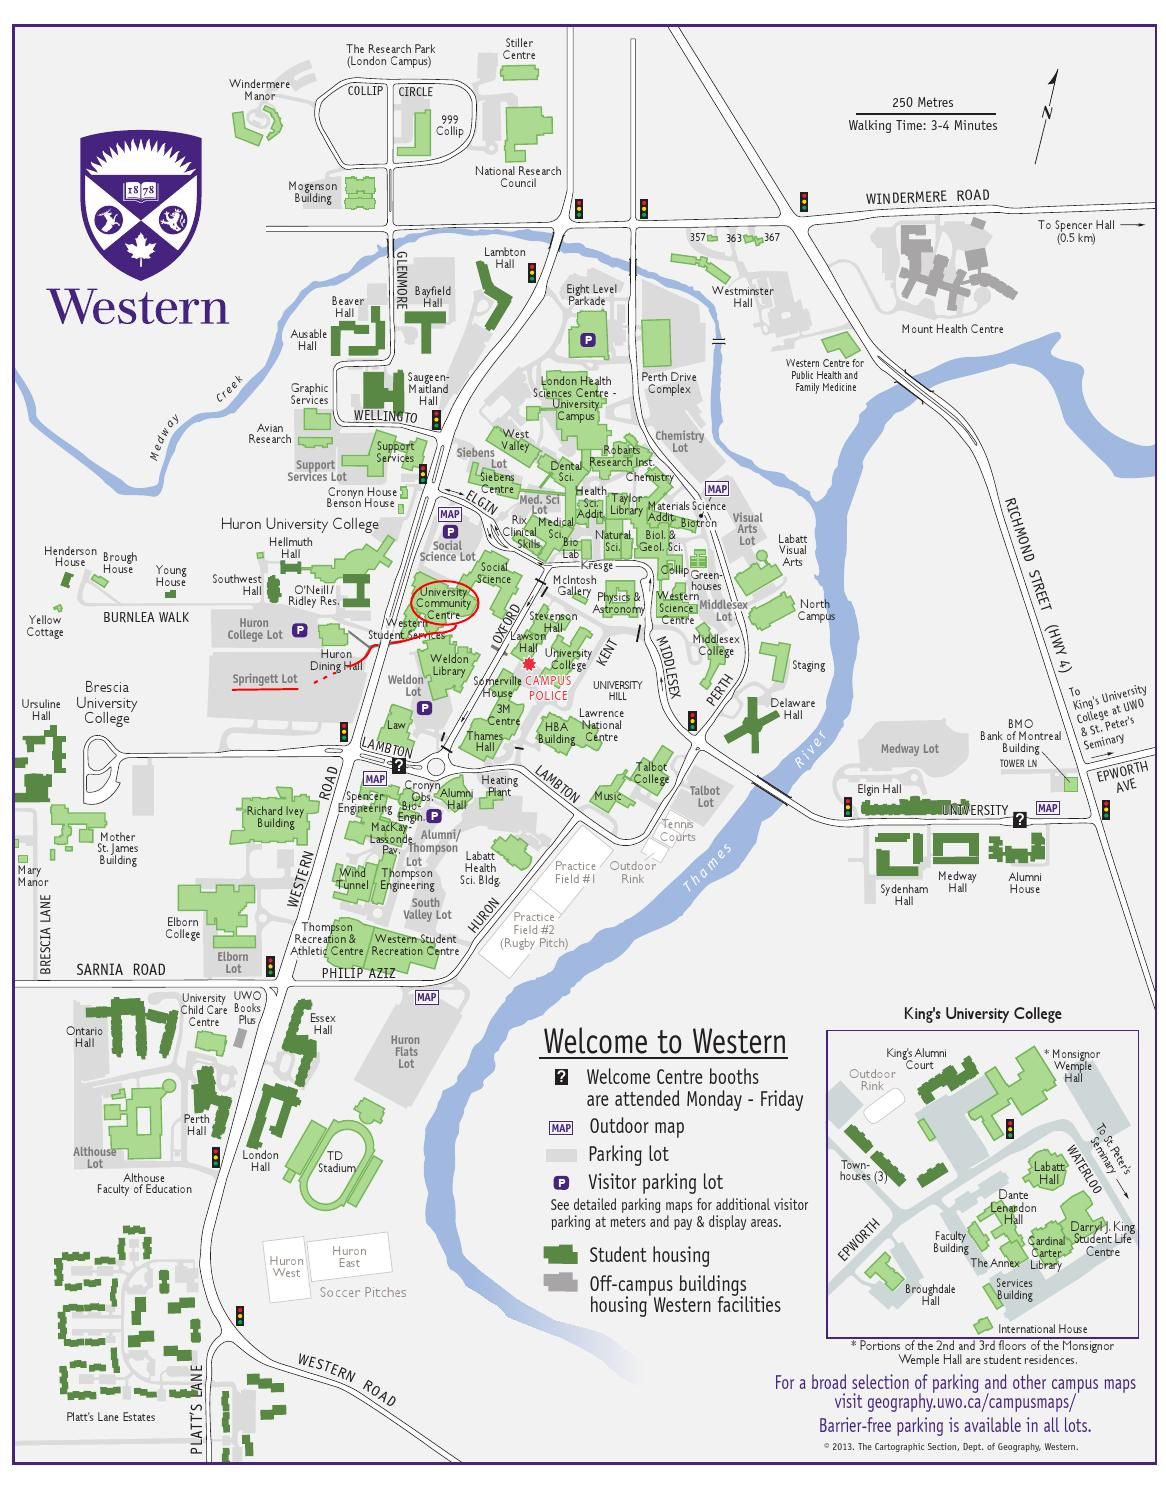 ursuline college campus map Sona 2014 Map By Paul Mallet Issuu